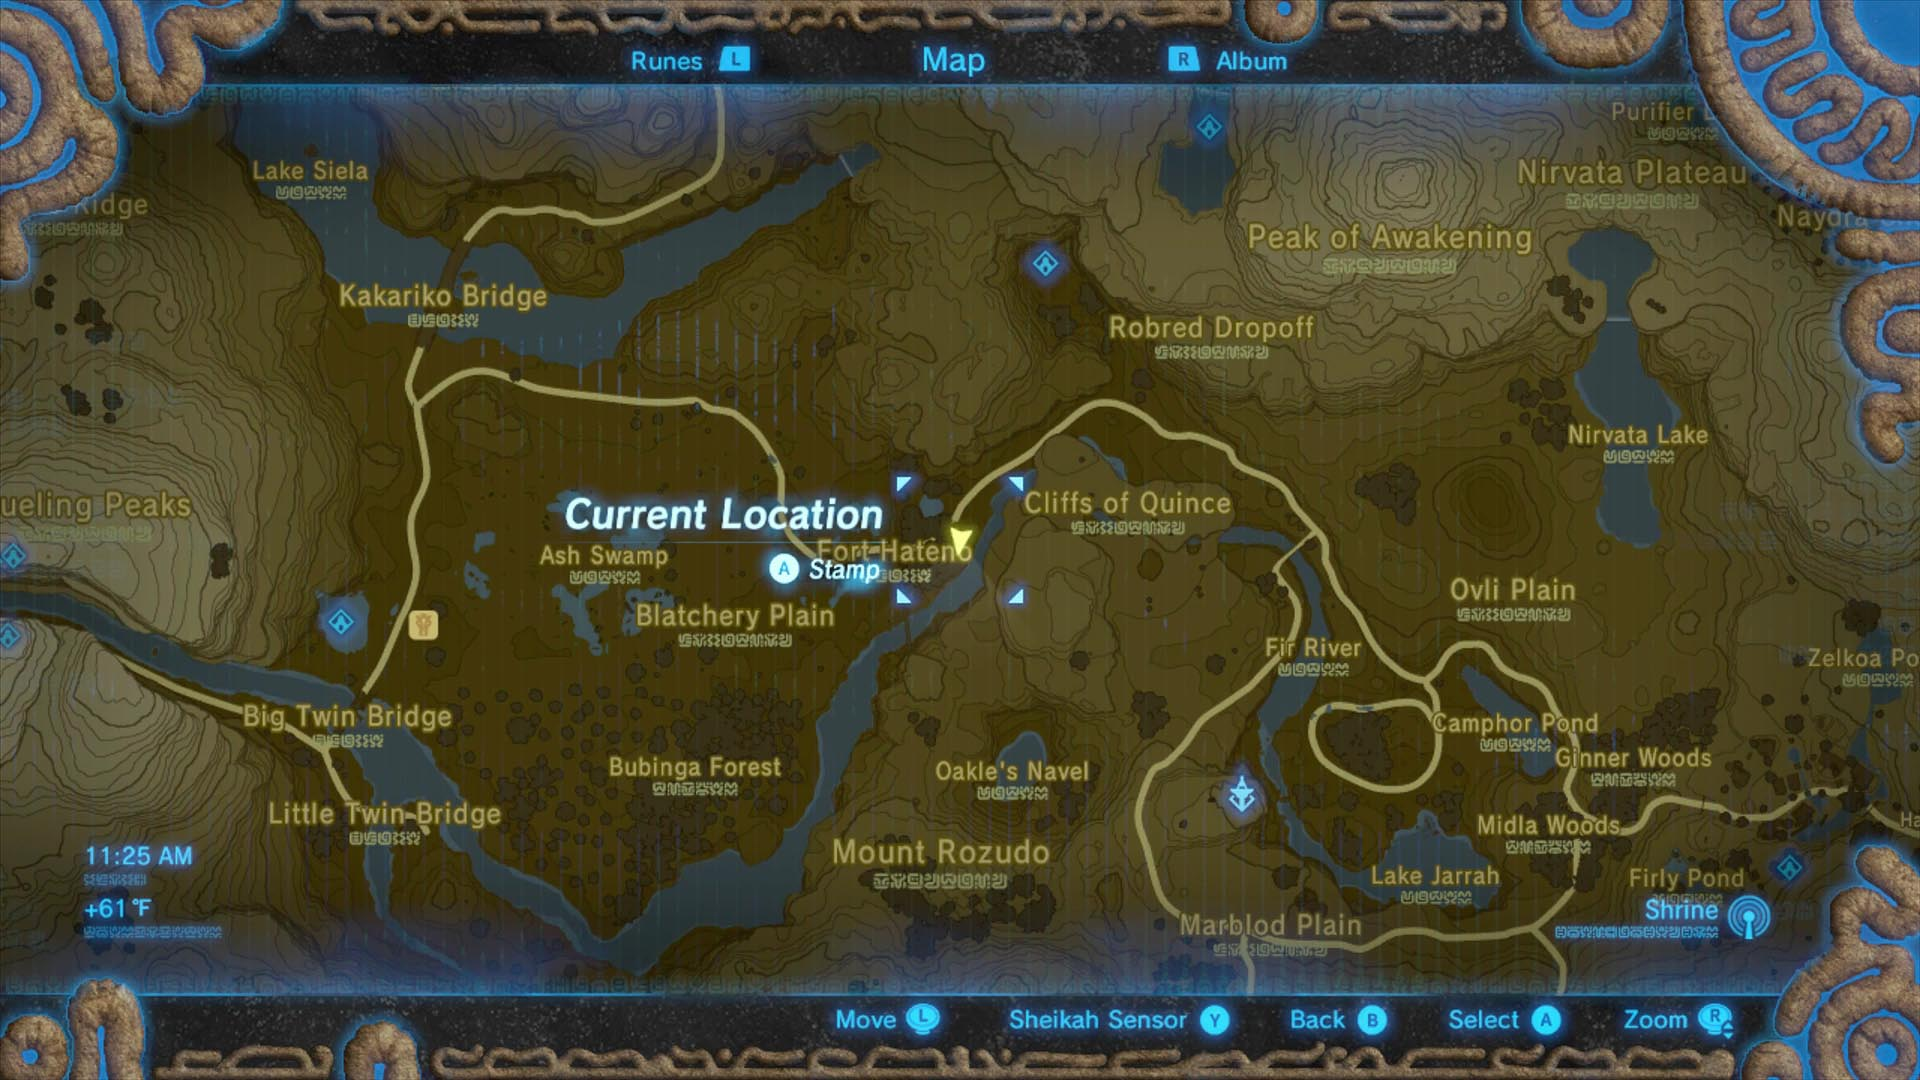 Zelda Breath of the Wild guide: Kam Urog shrine (Cursed